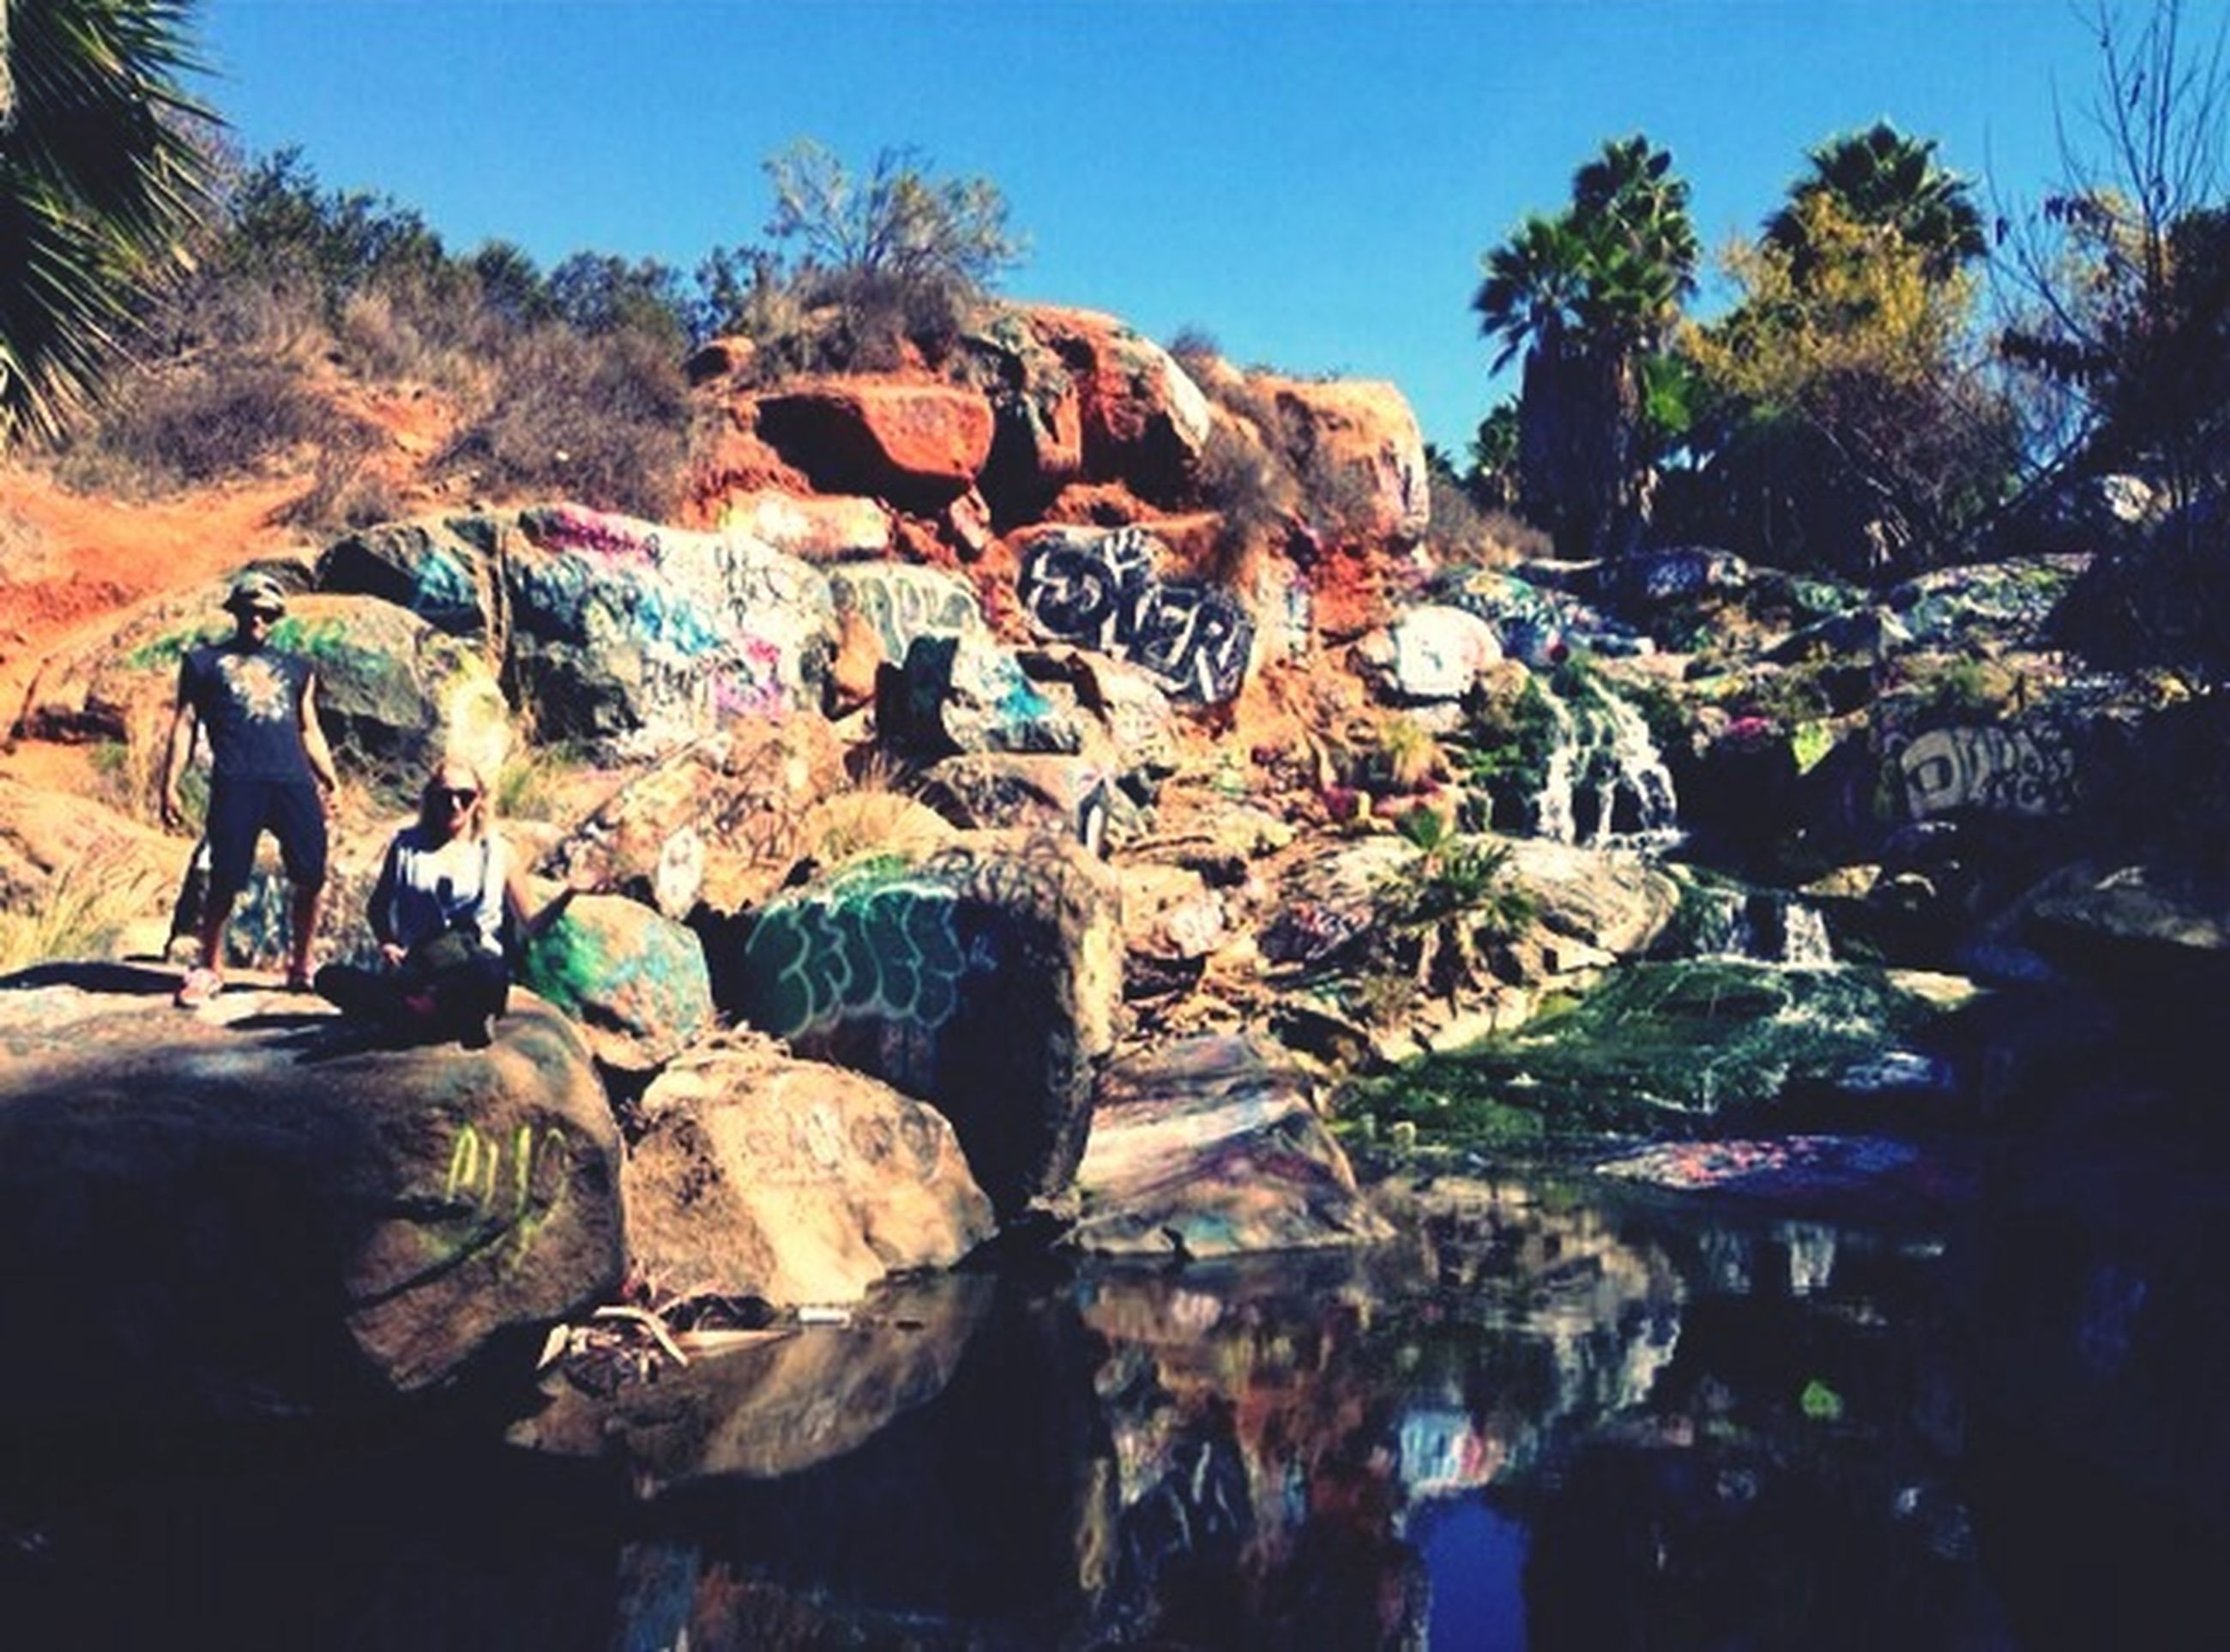 Spent the day with two of my best friends who have helped me through thick and thin since I got here :) San Diego Friends Abobe Falls Mwah!